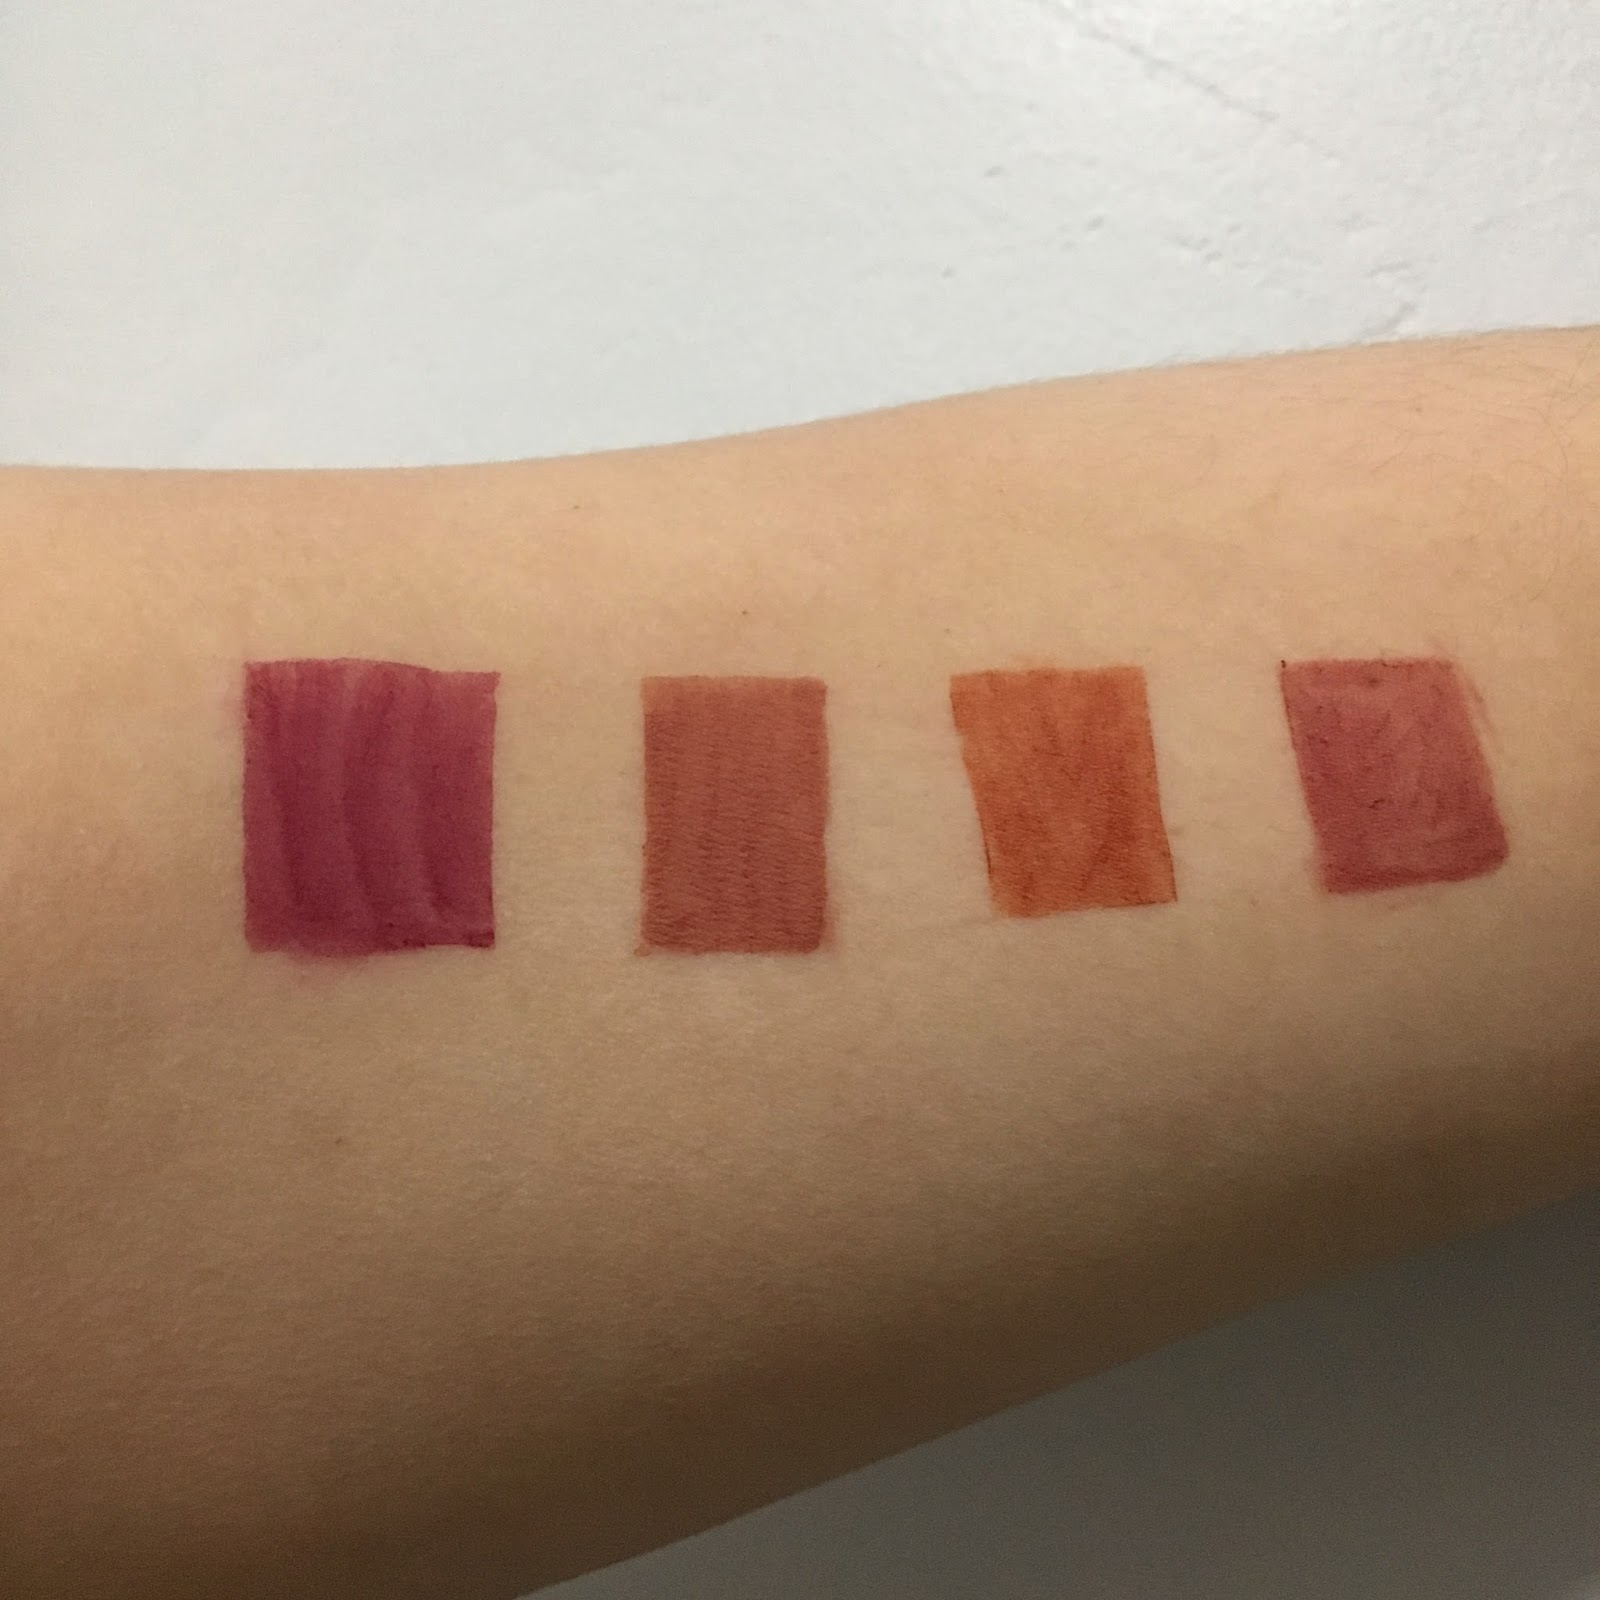 Ultra Blotted Lip by Colourpop #6